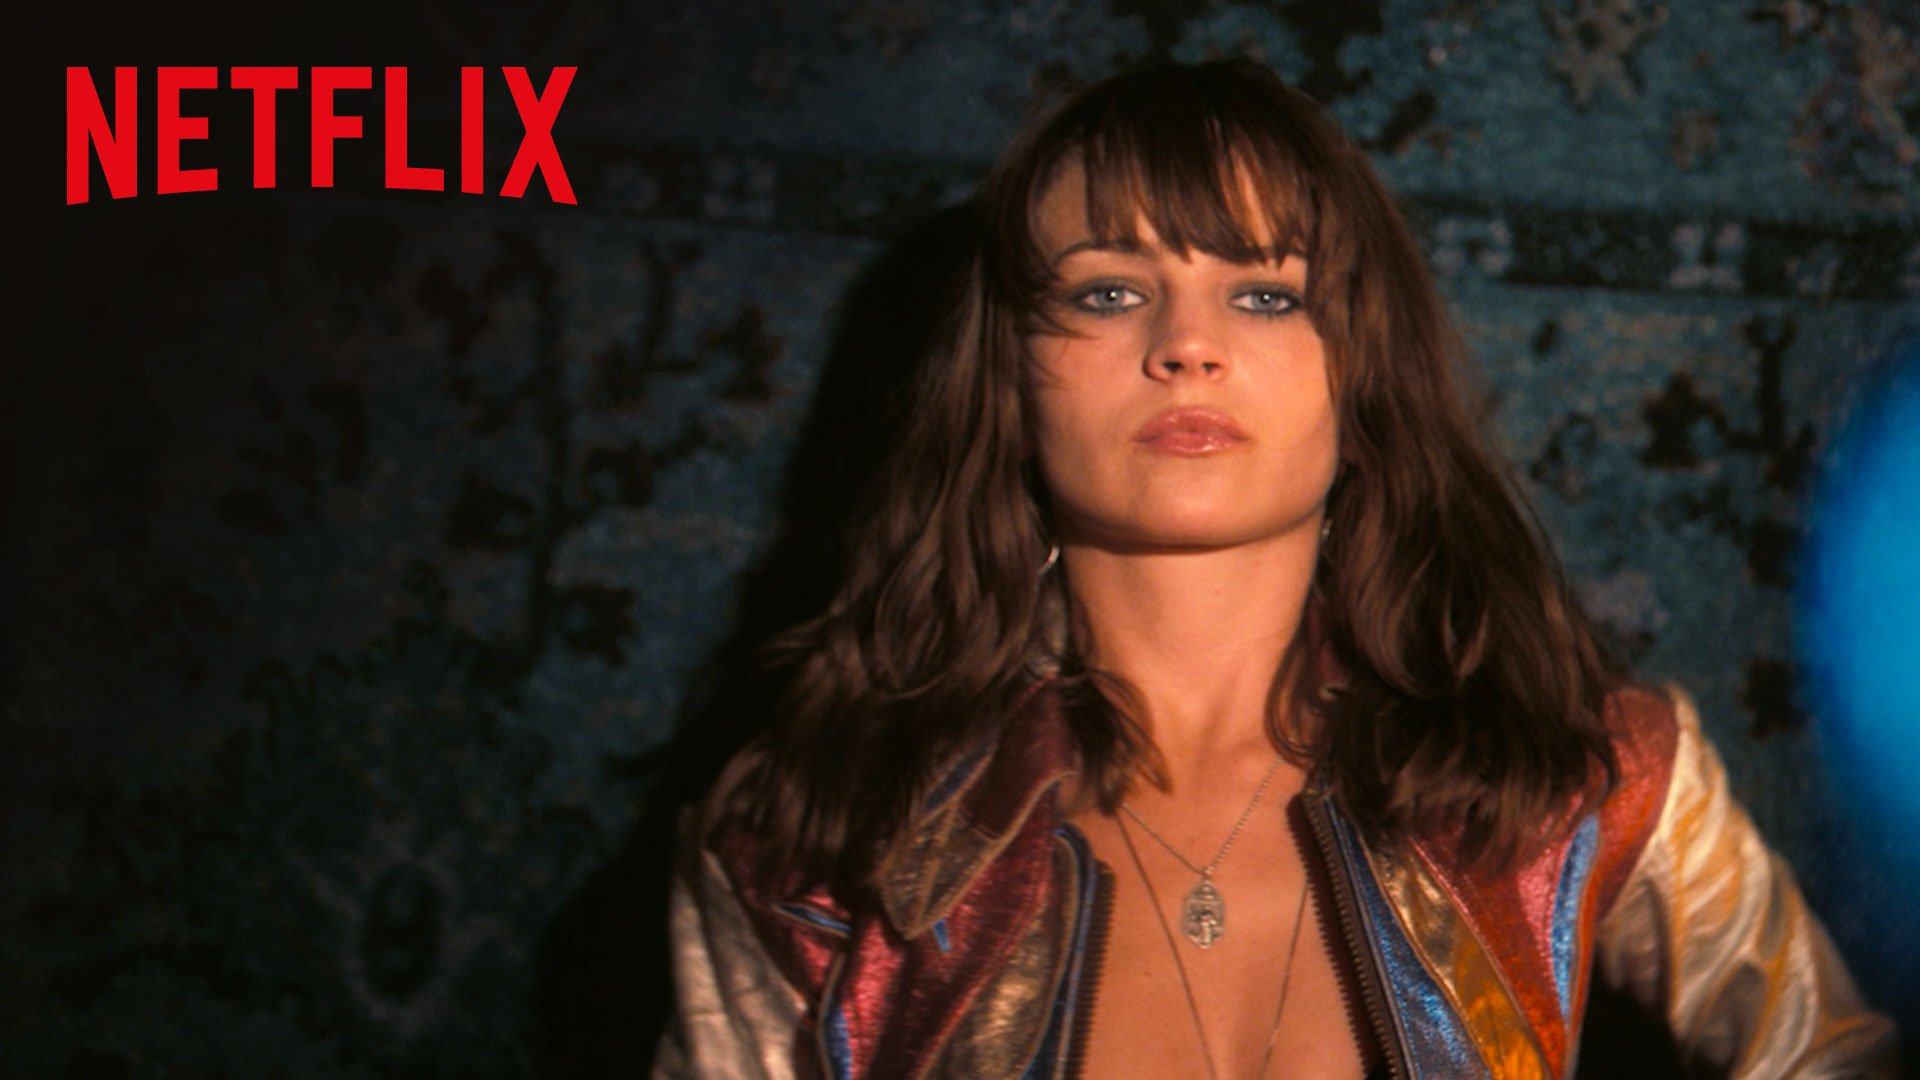 Let's do this �� @GirlbossNetflix arrives April 21. https://t.co/hBWbqZLKL3